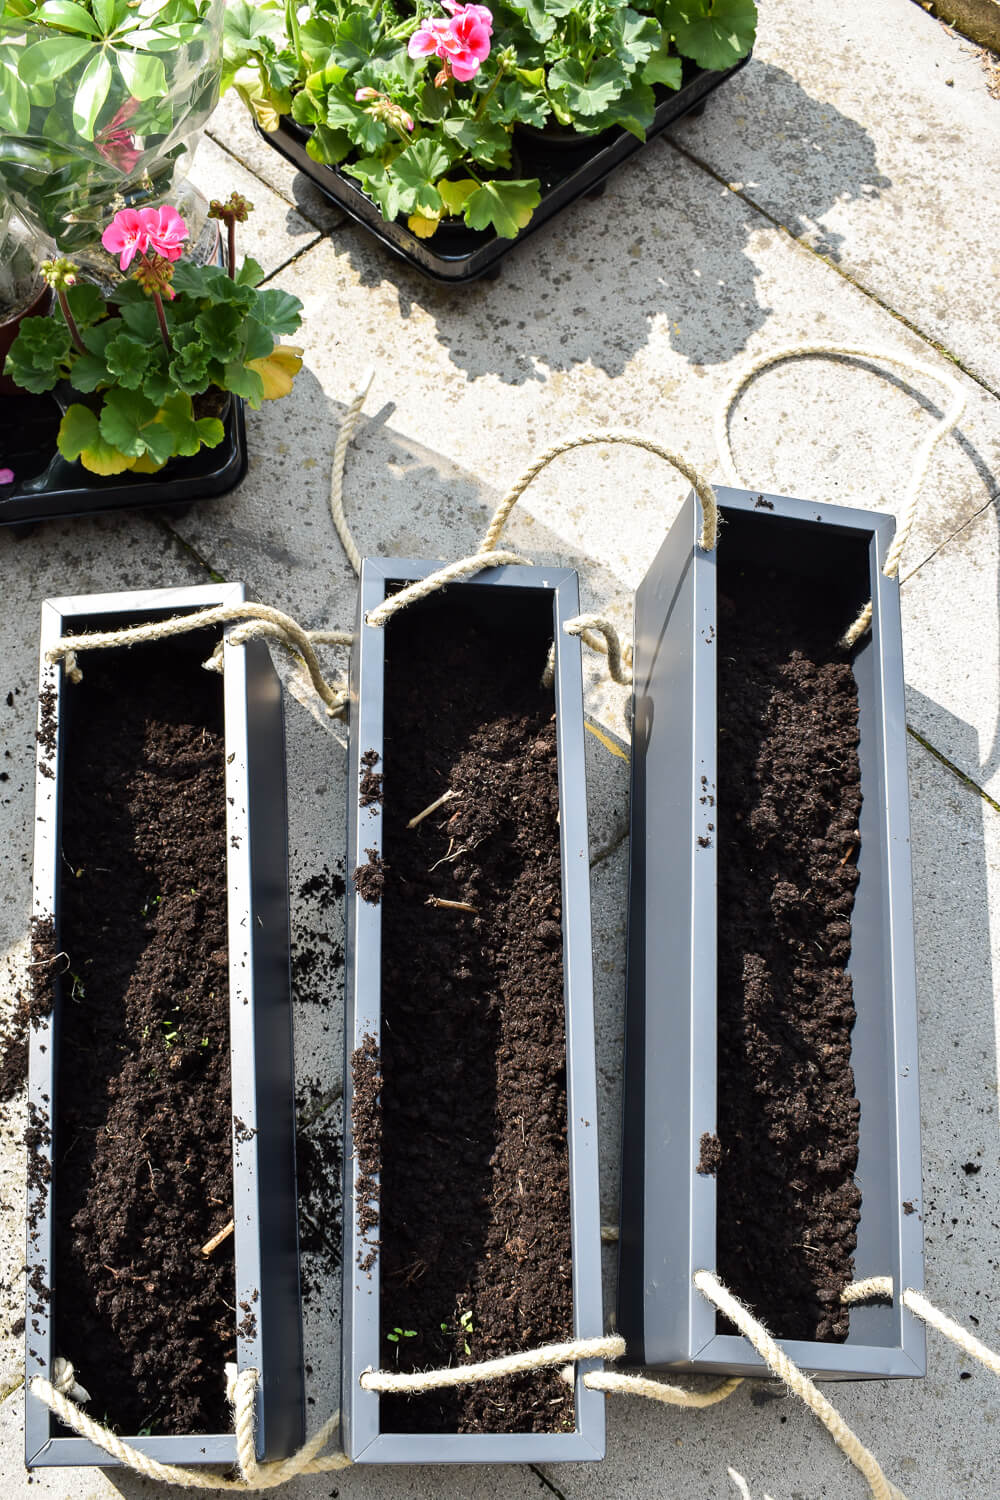 Soil in three metal planters